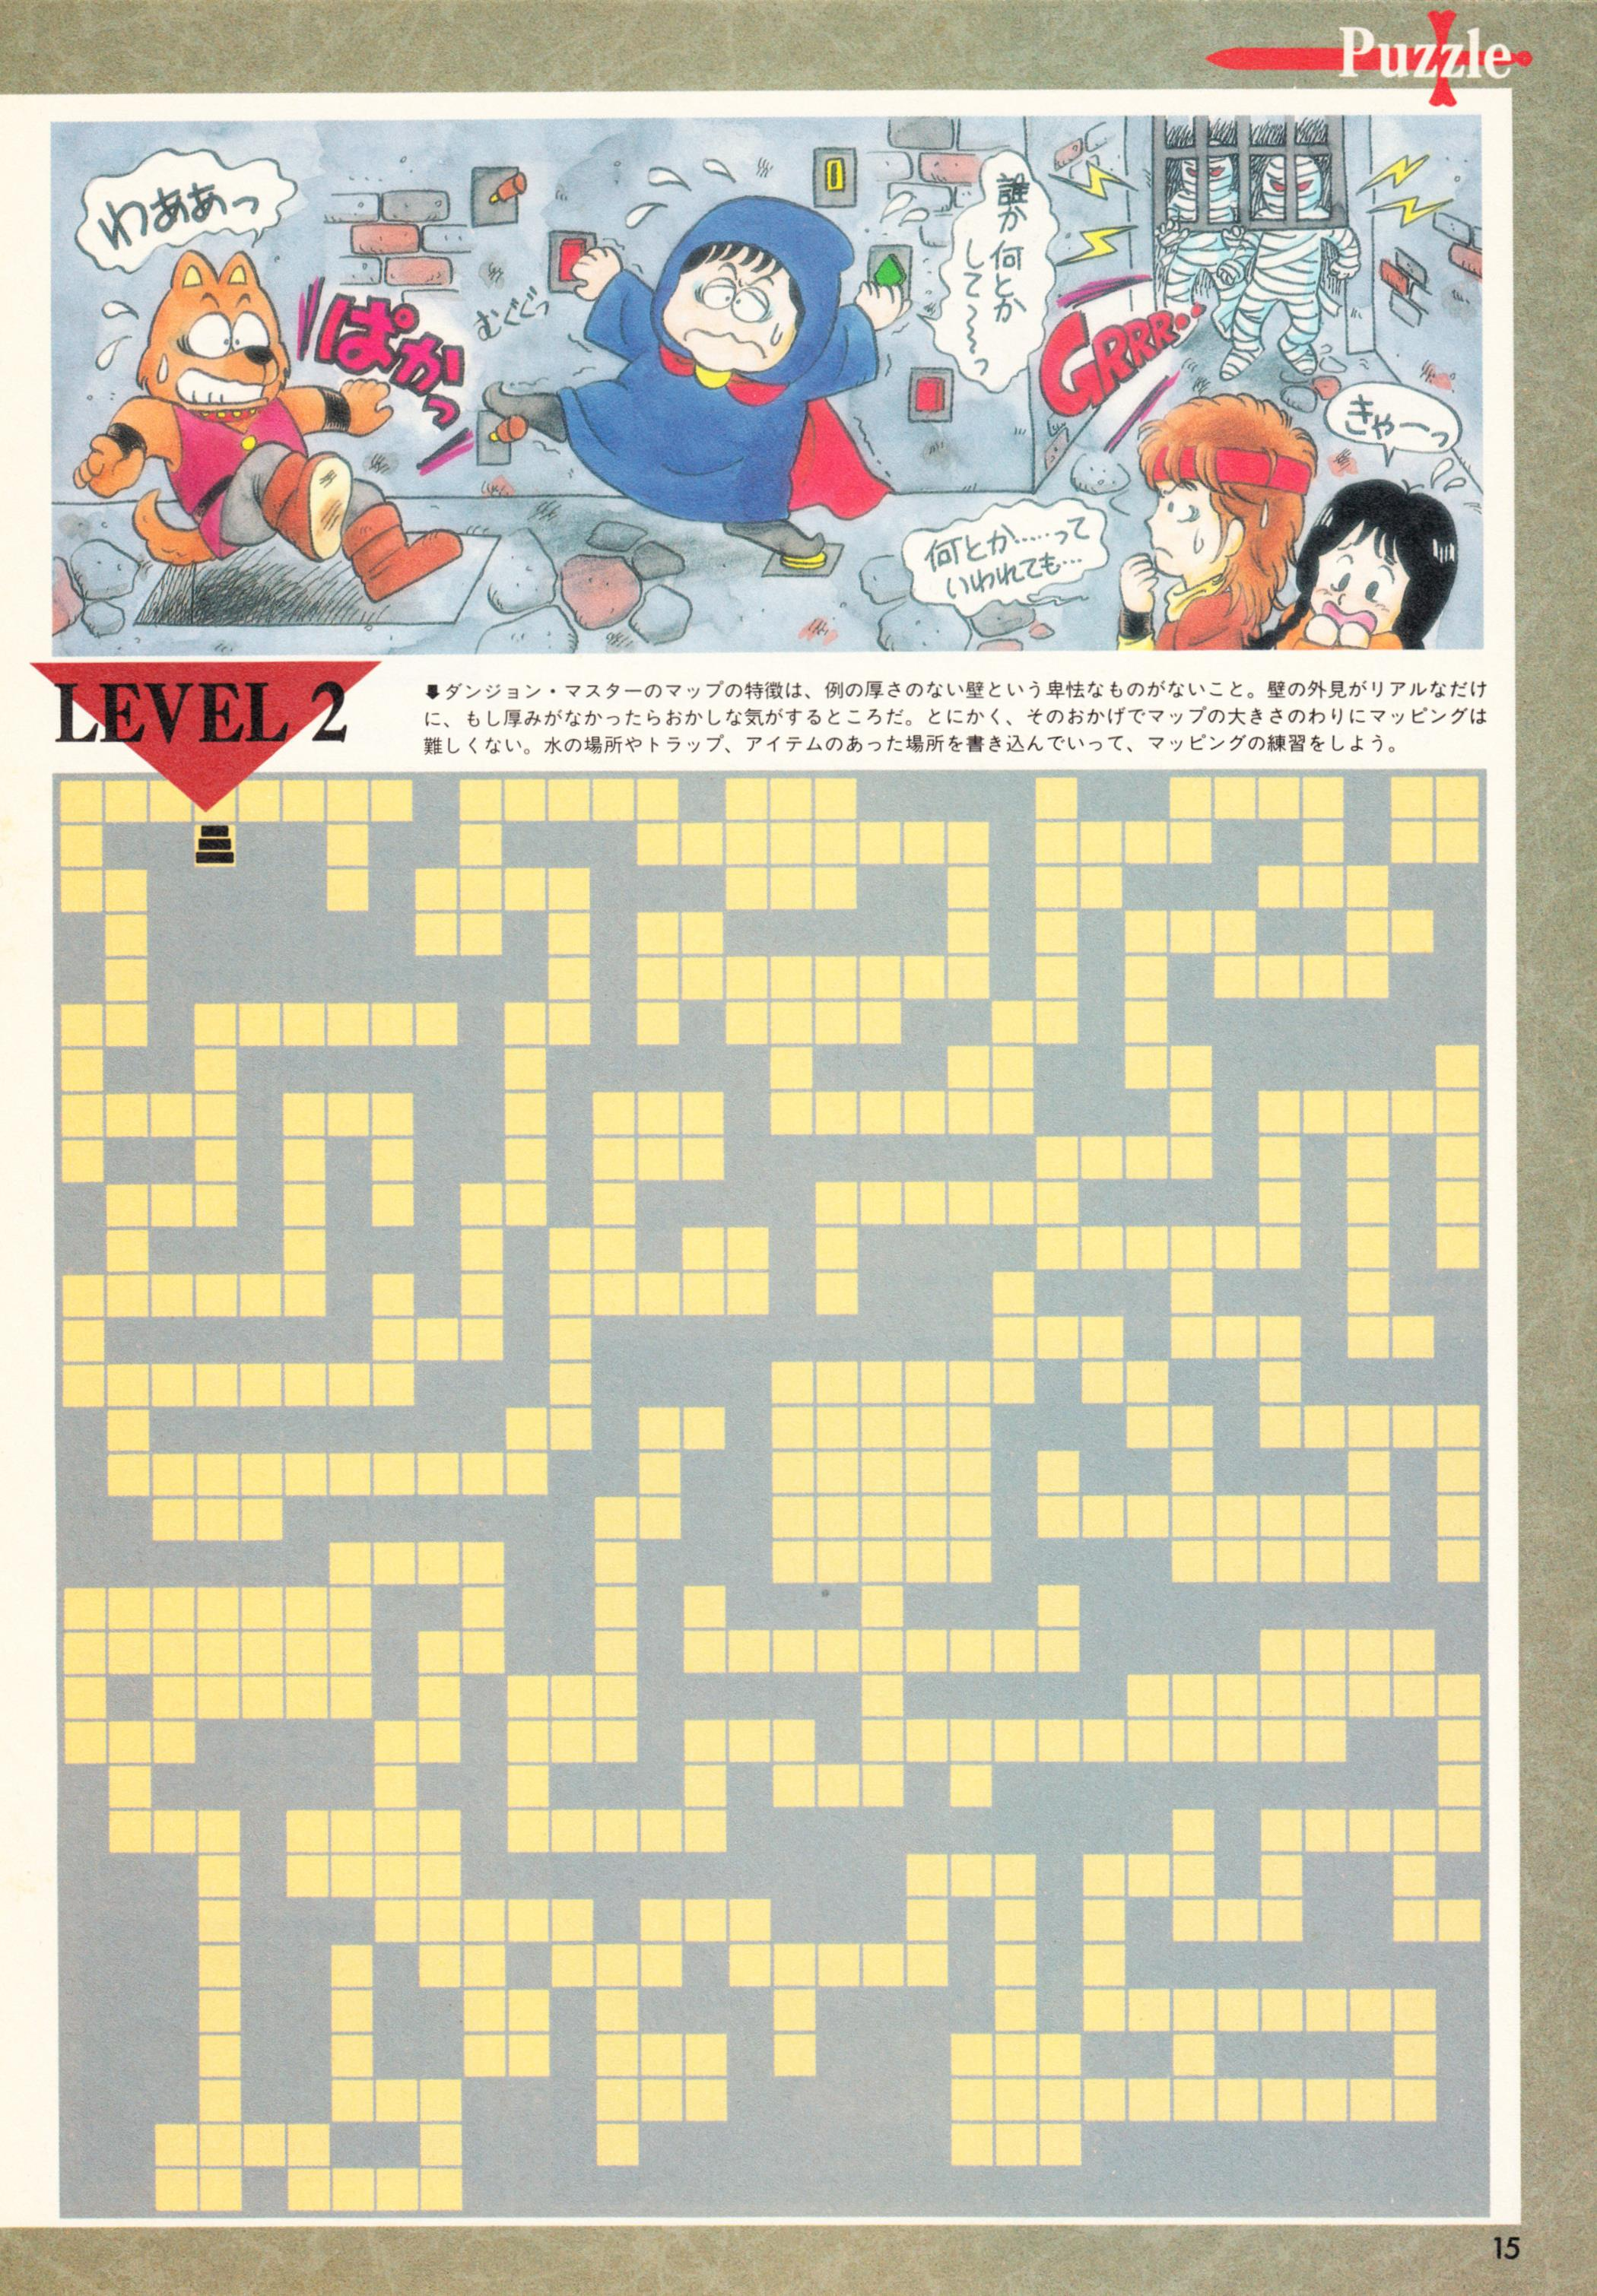 Special Supplement 2 - Dungeon Master Guide published in Japanese magazine 'Login', Vol 9 No 3 02 February 1990, Page 15